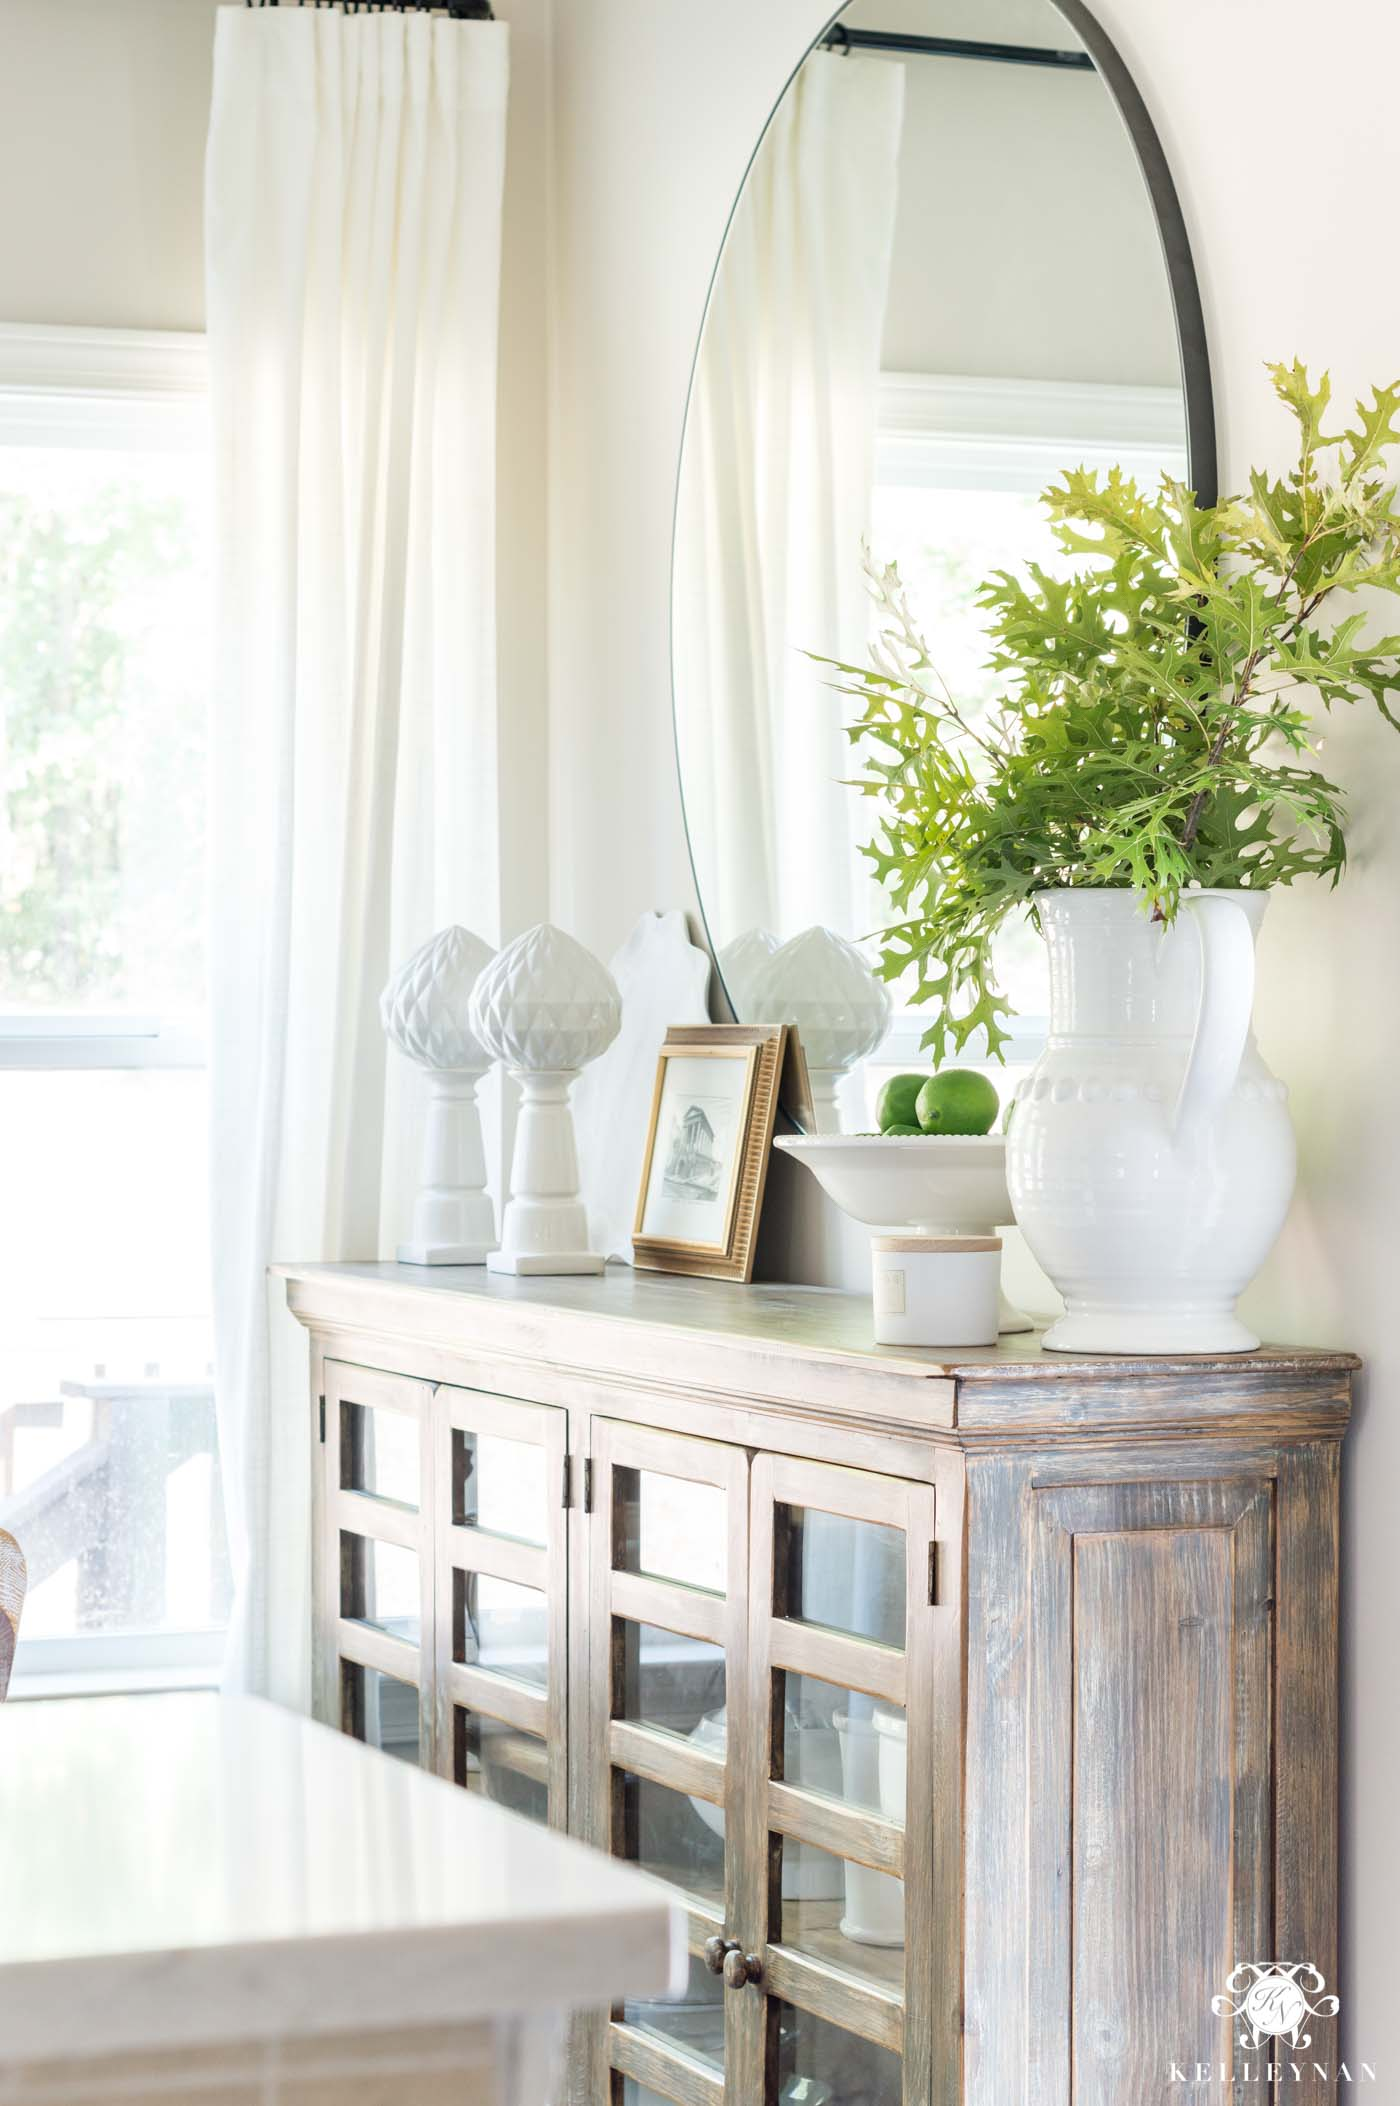 How to style a Sideboard in the dining room or breakfast nook